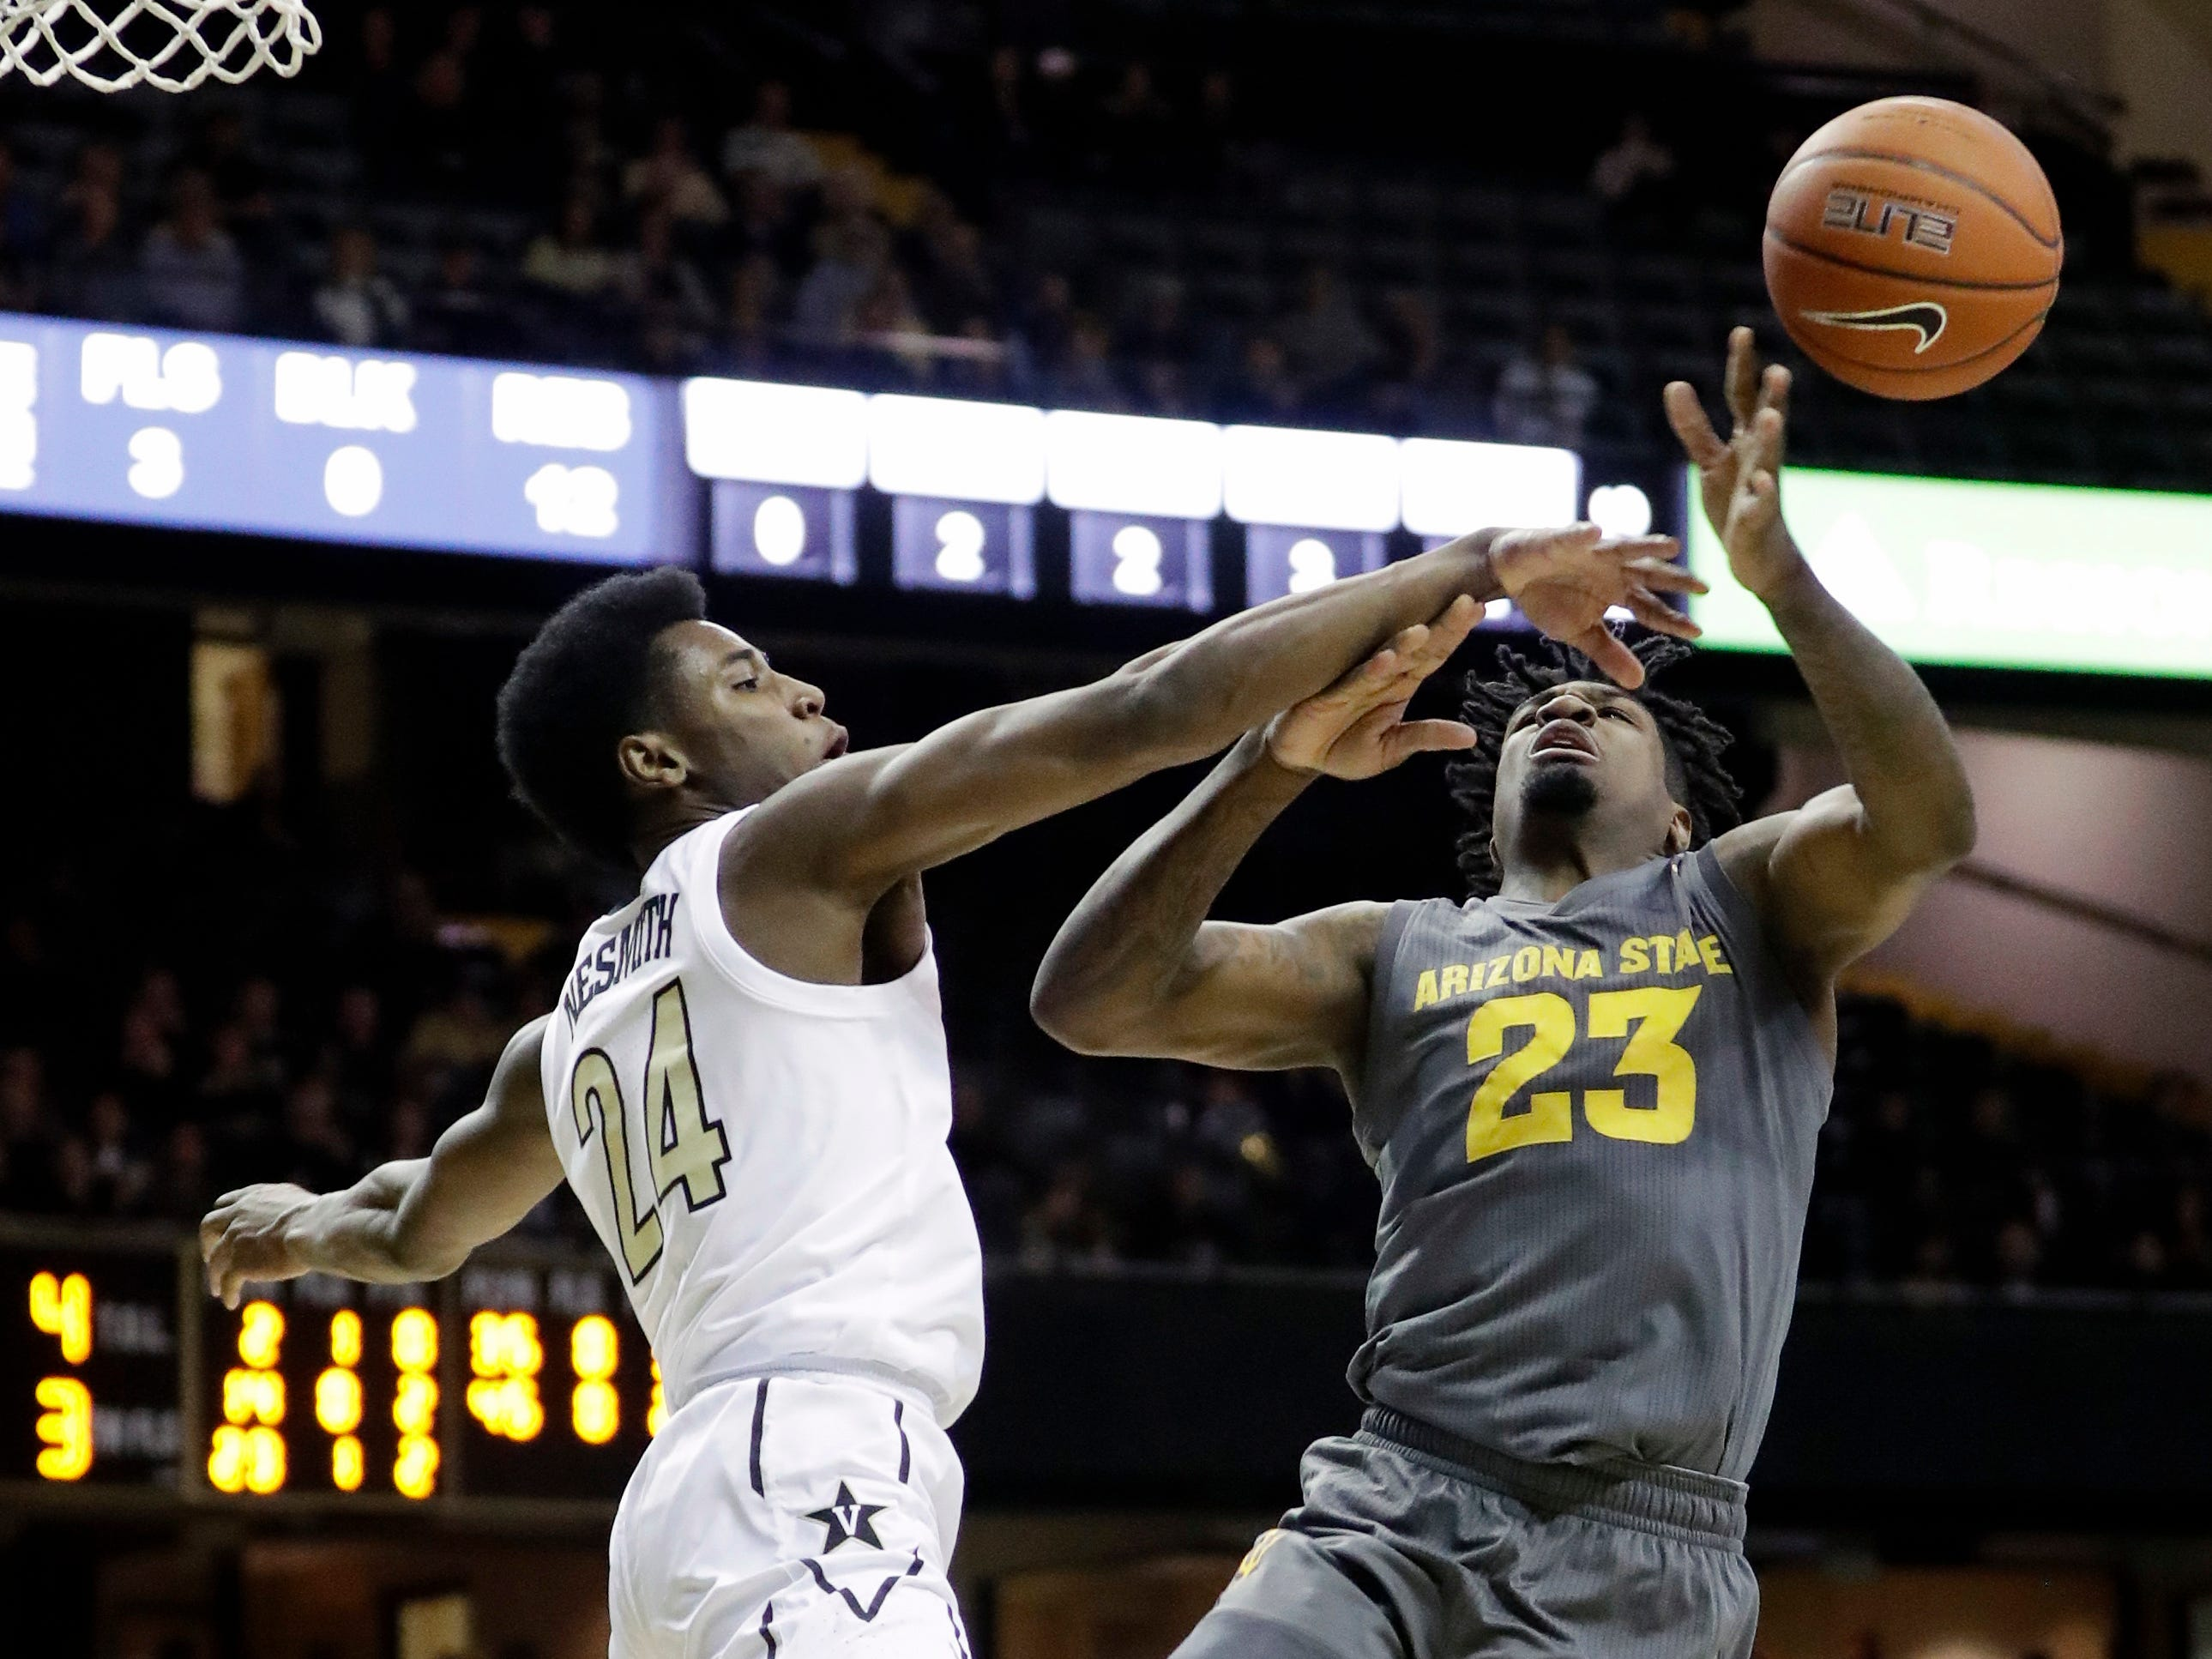 Vanderbilt's Aaron Nesmith (24) knocks the ball away from Arizona State forward Romello White (23) in the first half of an NCAA college basketball game Monday, Dec. 17, 2018, in Nashville, Tenn.